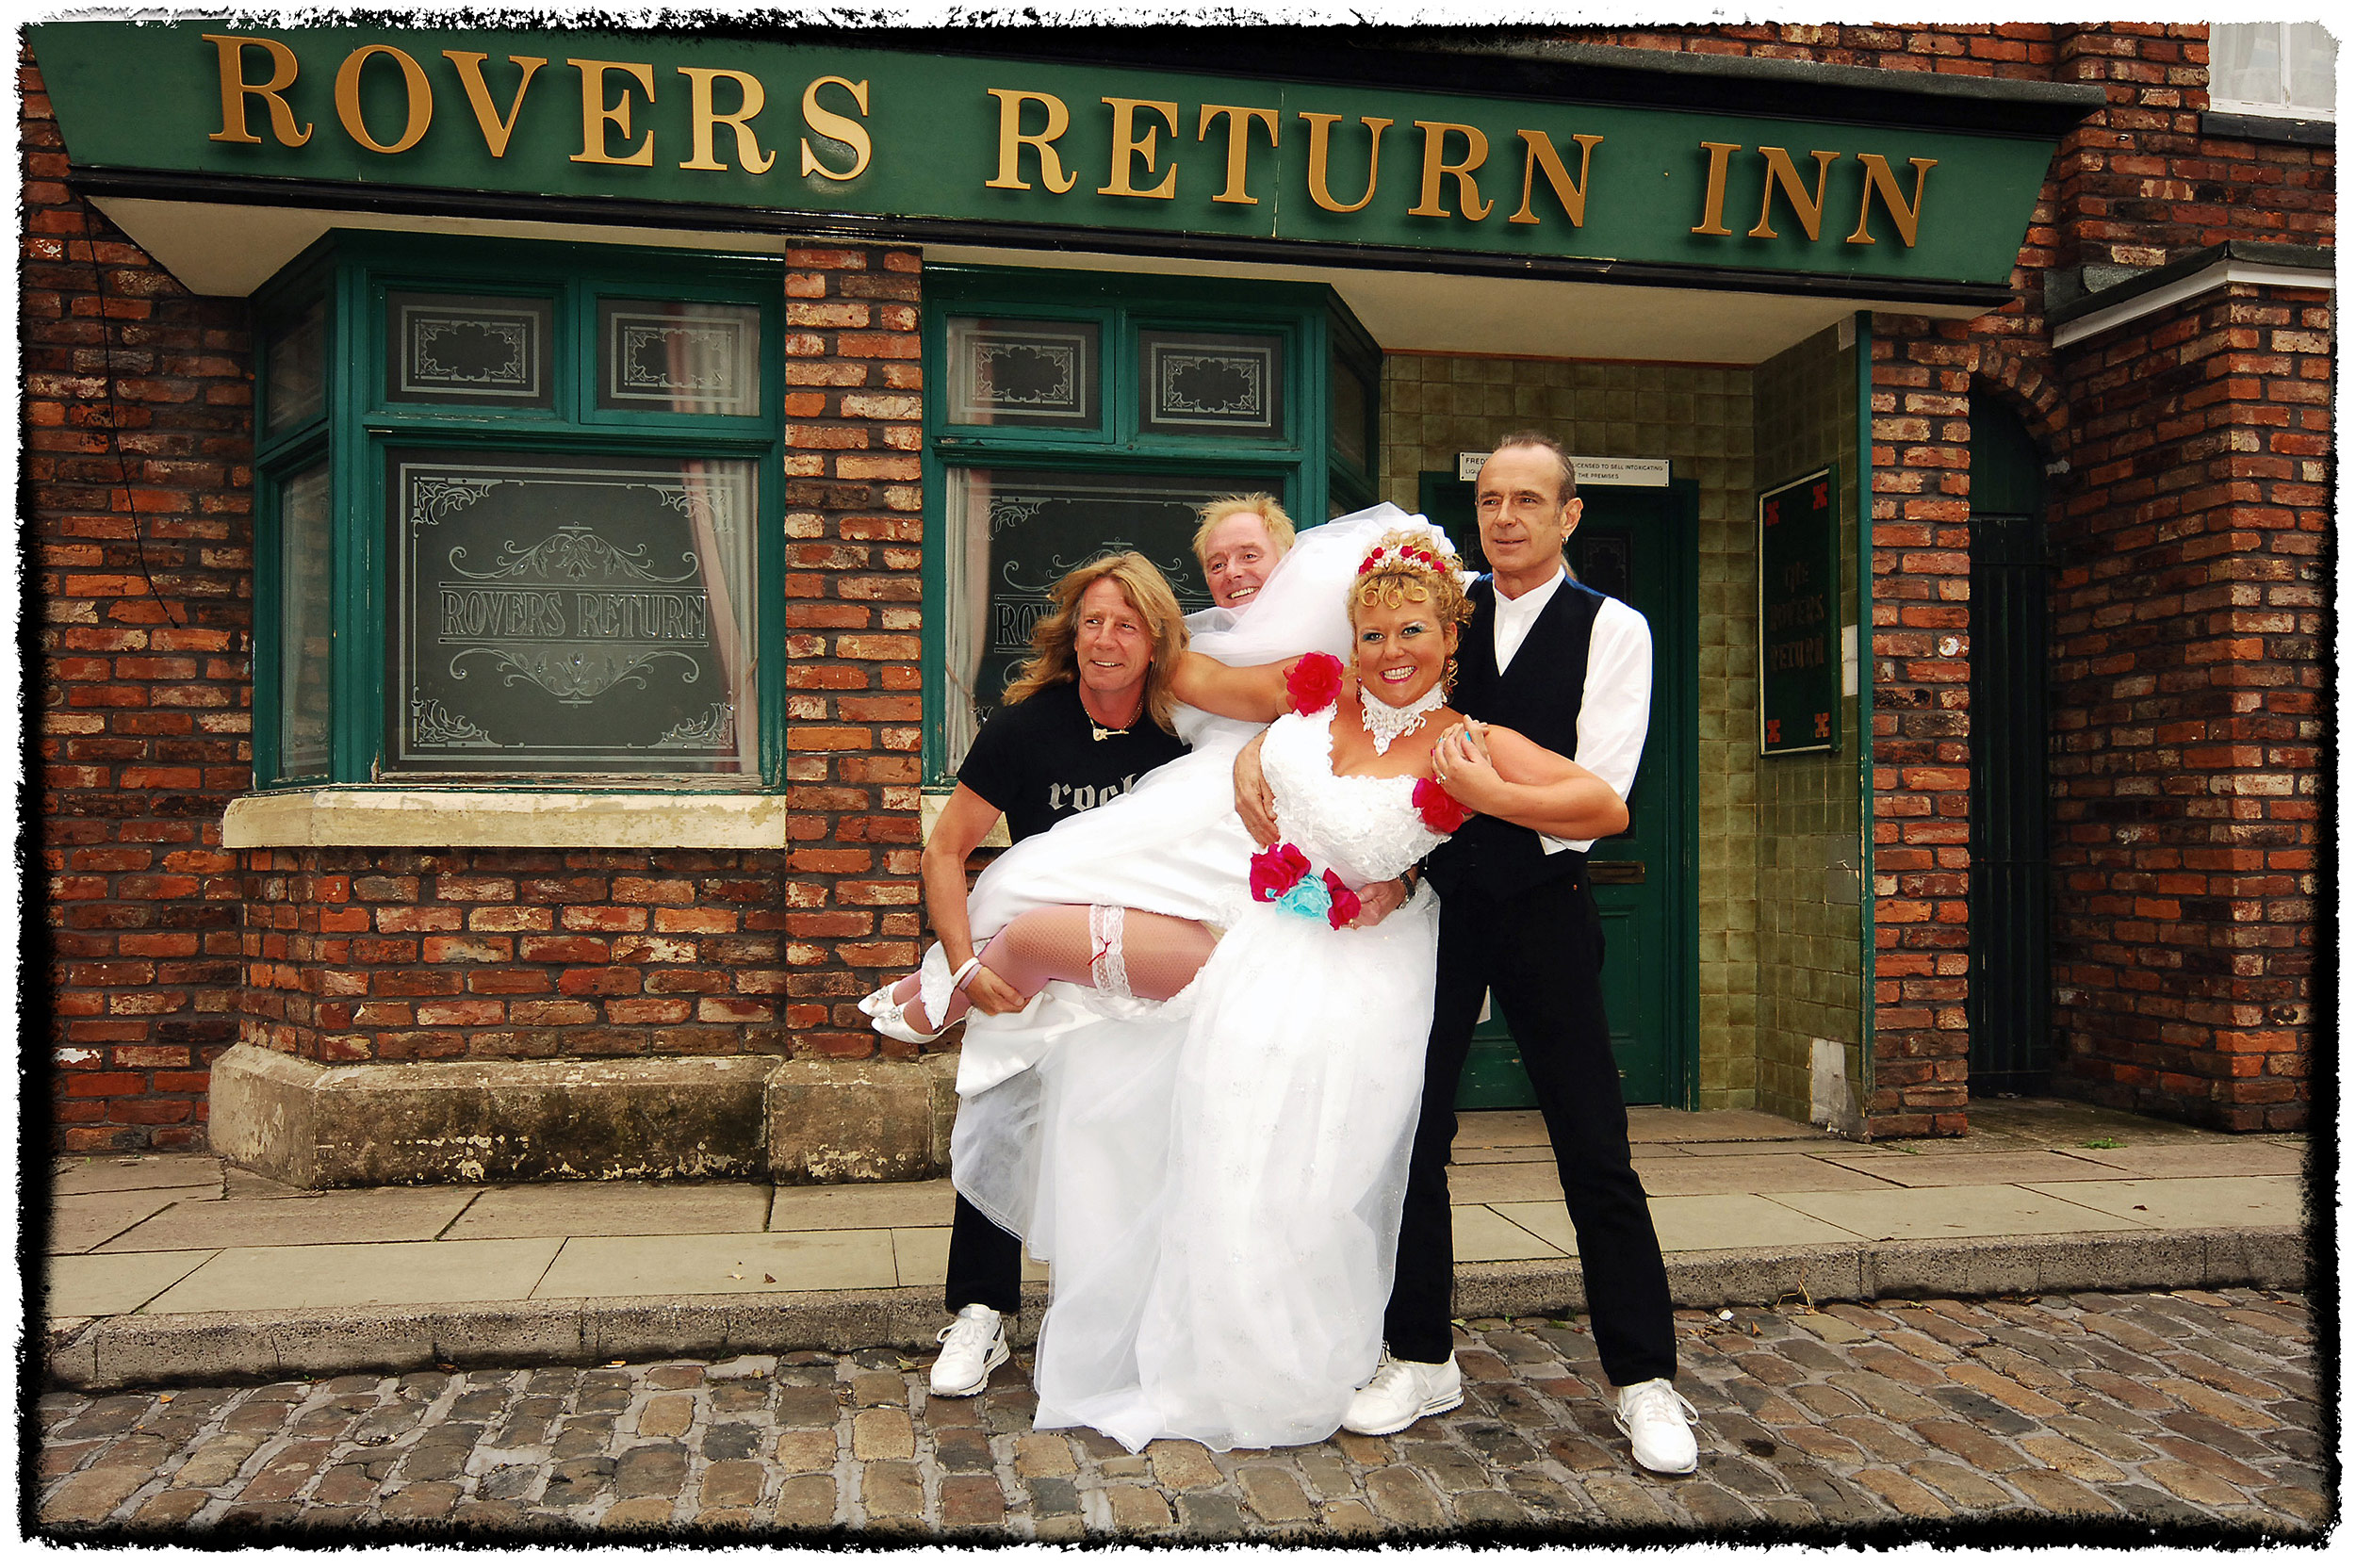 Rock and soap stars meet for a photograph on the cobbled street of ITV's long running soap opera, Coronation St